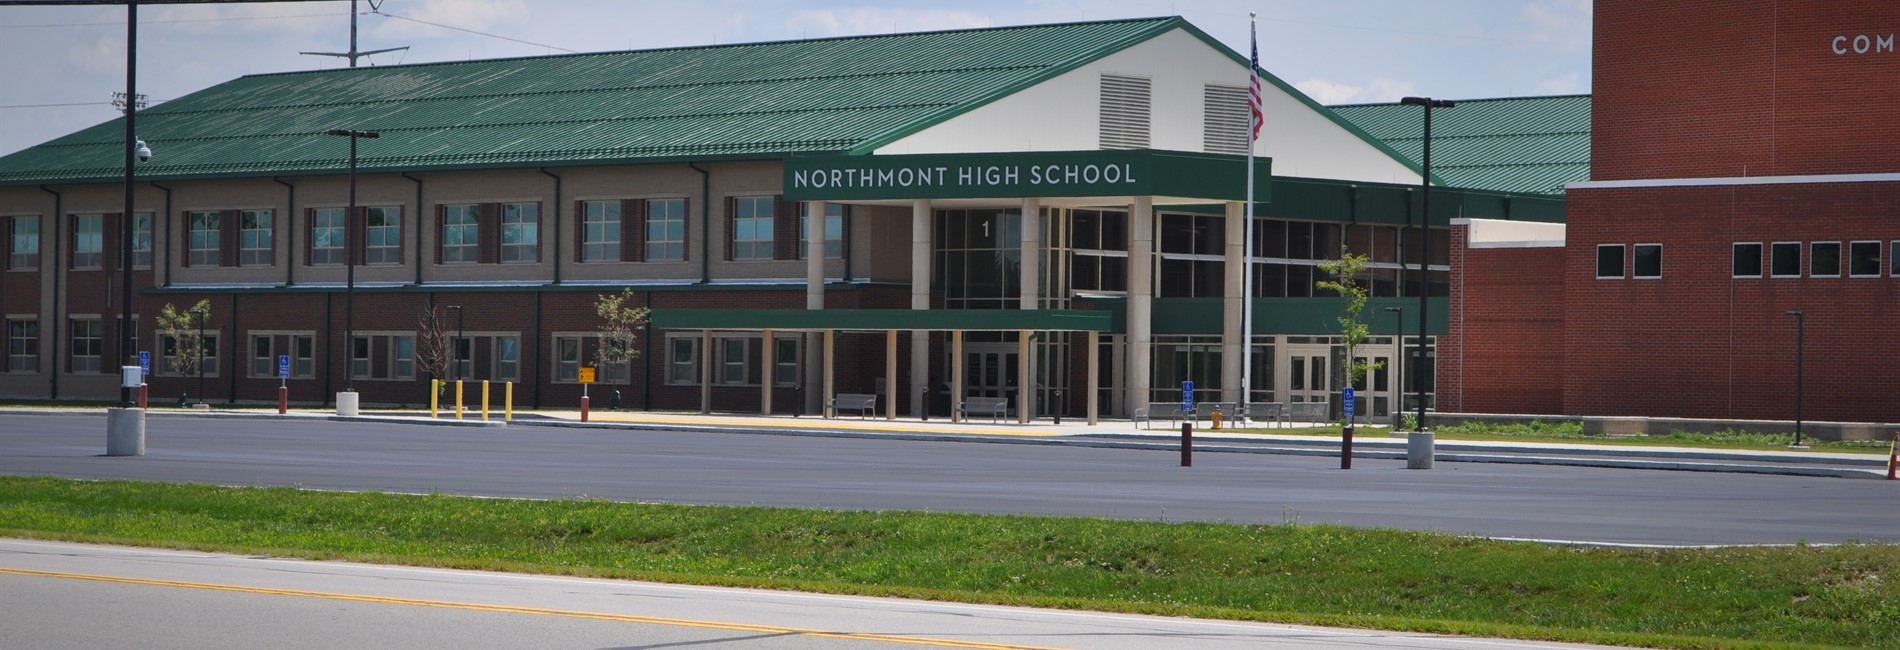 Northmont High School